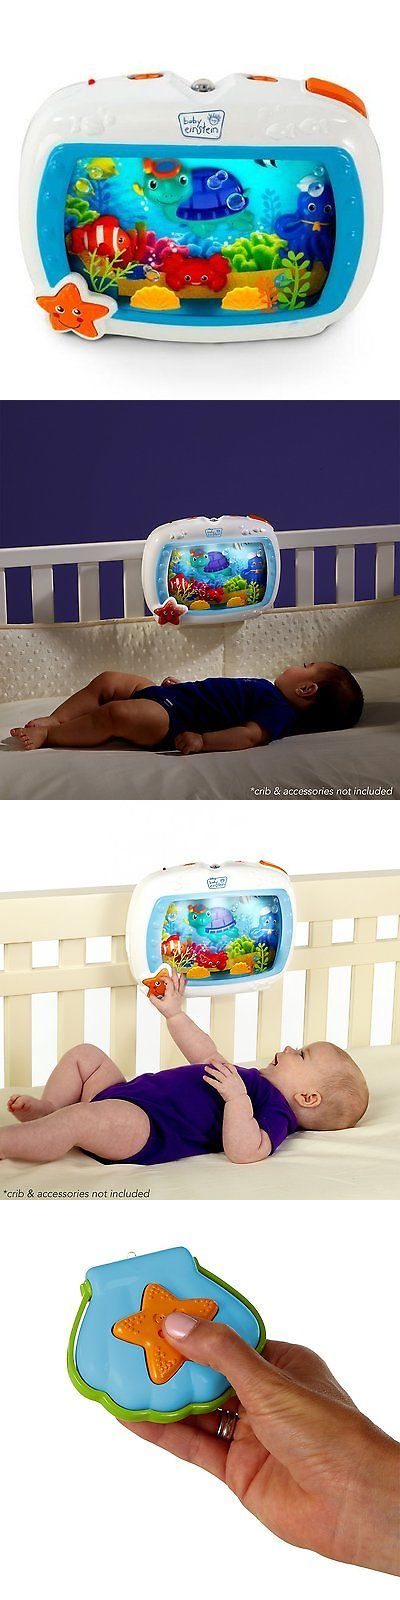 baby kid stuff: Baby Crib Toy Musical Infant Soother Light Up Sensory Toys Bed Mobile Gift New -> BUY IT NOW ONLY: $36.53 on eBay!